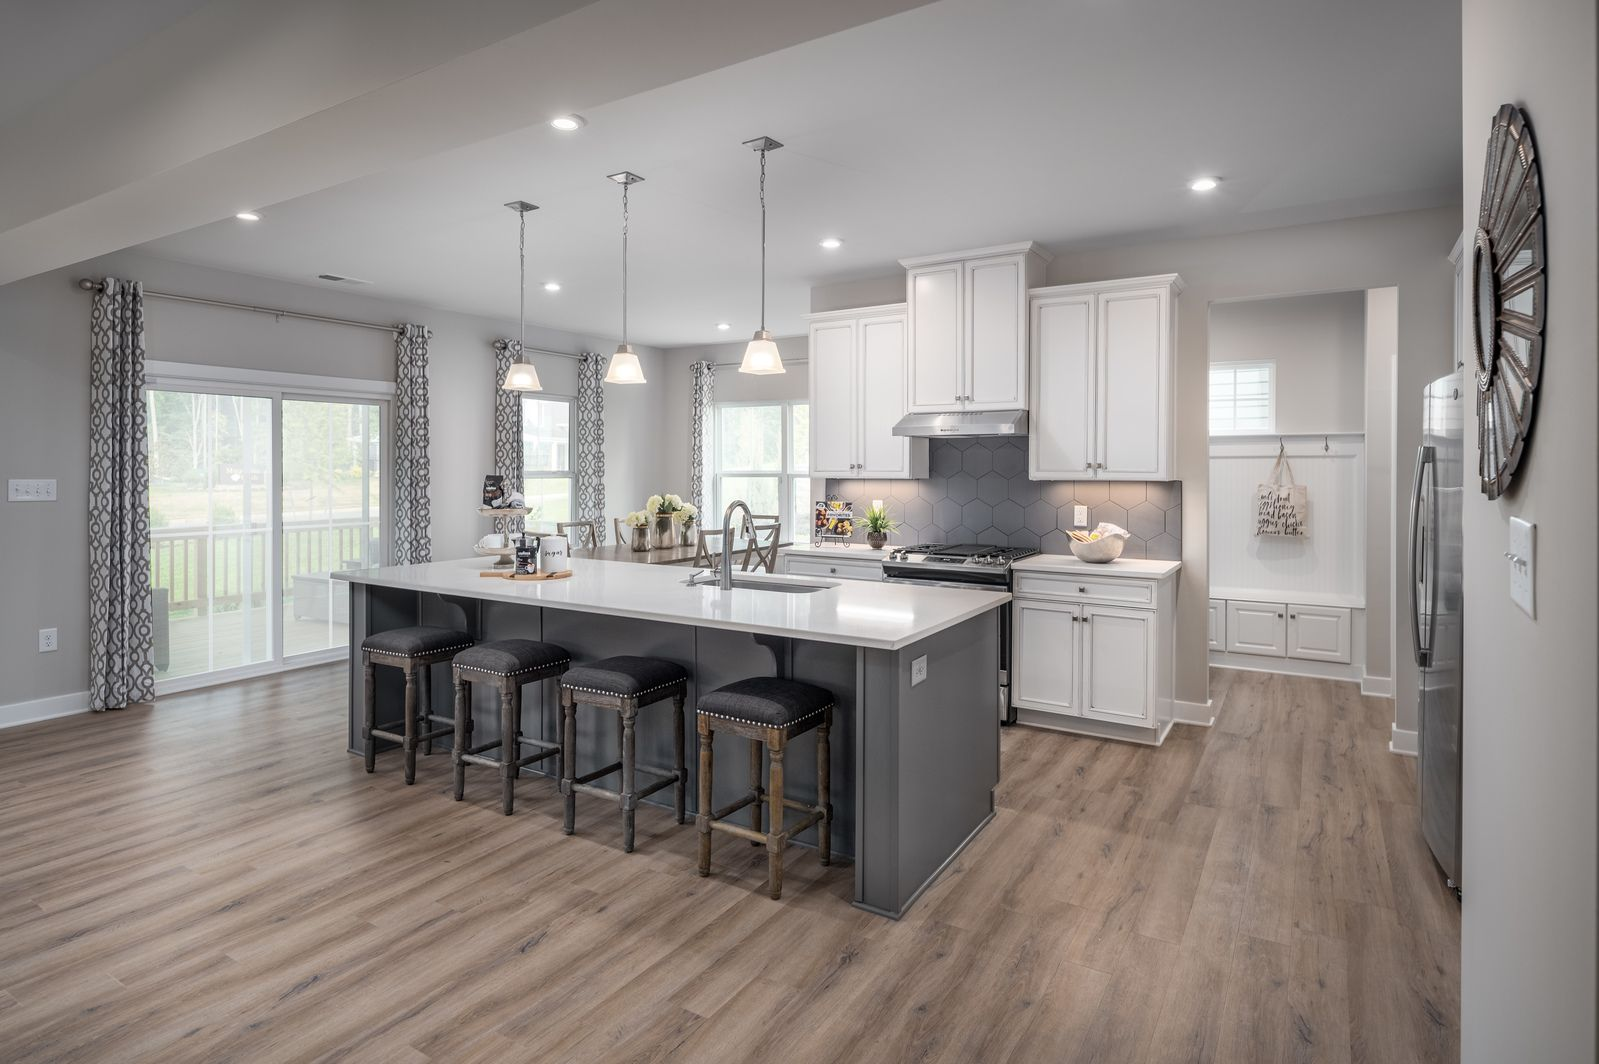 Kitchen featured in the Seneca at the Manor By Ryan Homes in Norfolk-Newport News, VA